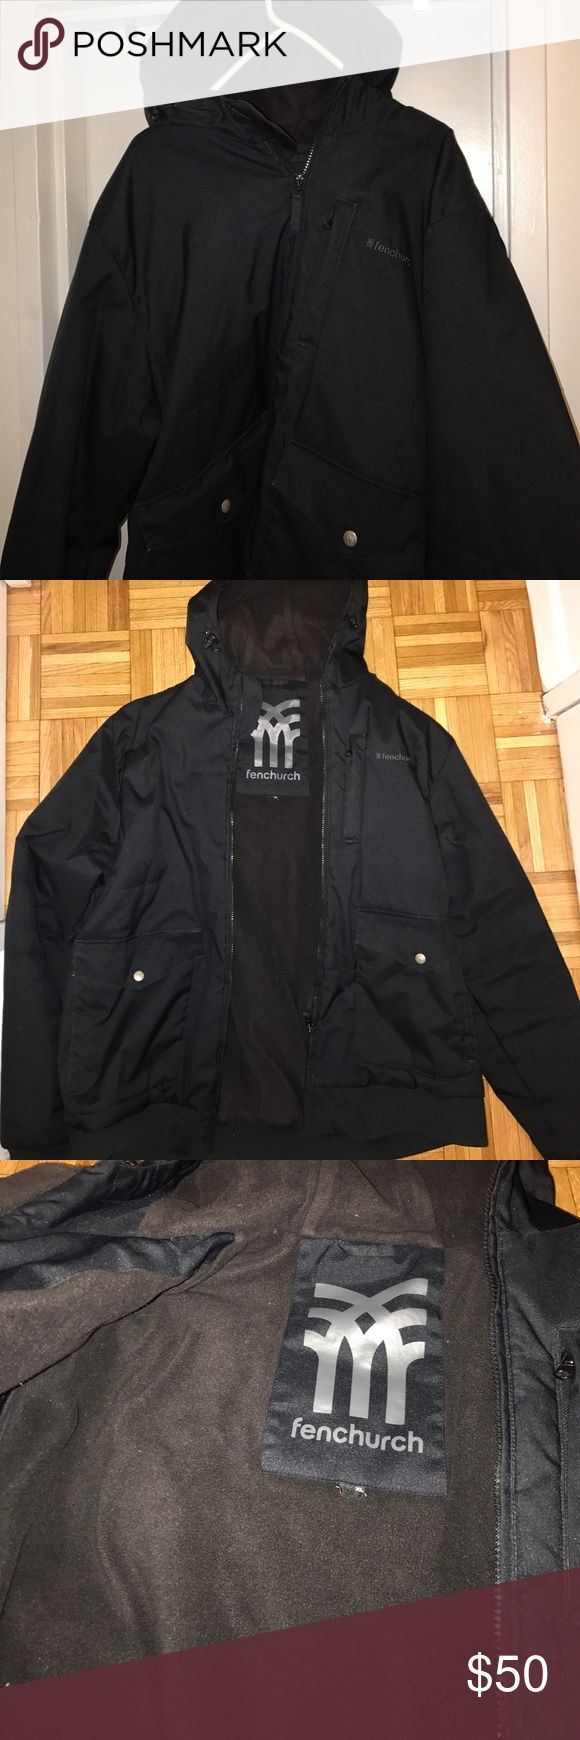 Sale Fenchurch Men Parka Coat Hooded Lined Size XL Fleece lined, super WARM, worn a handful of times for snowboarding. fenchurch Jackets & Coats Ski & Snowboard